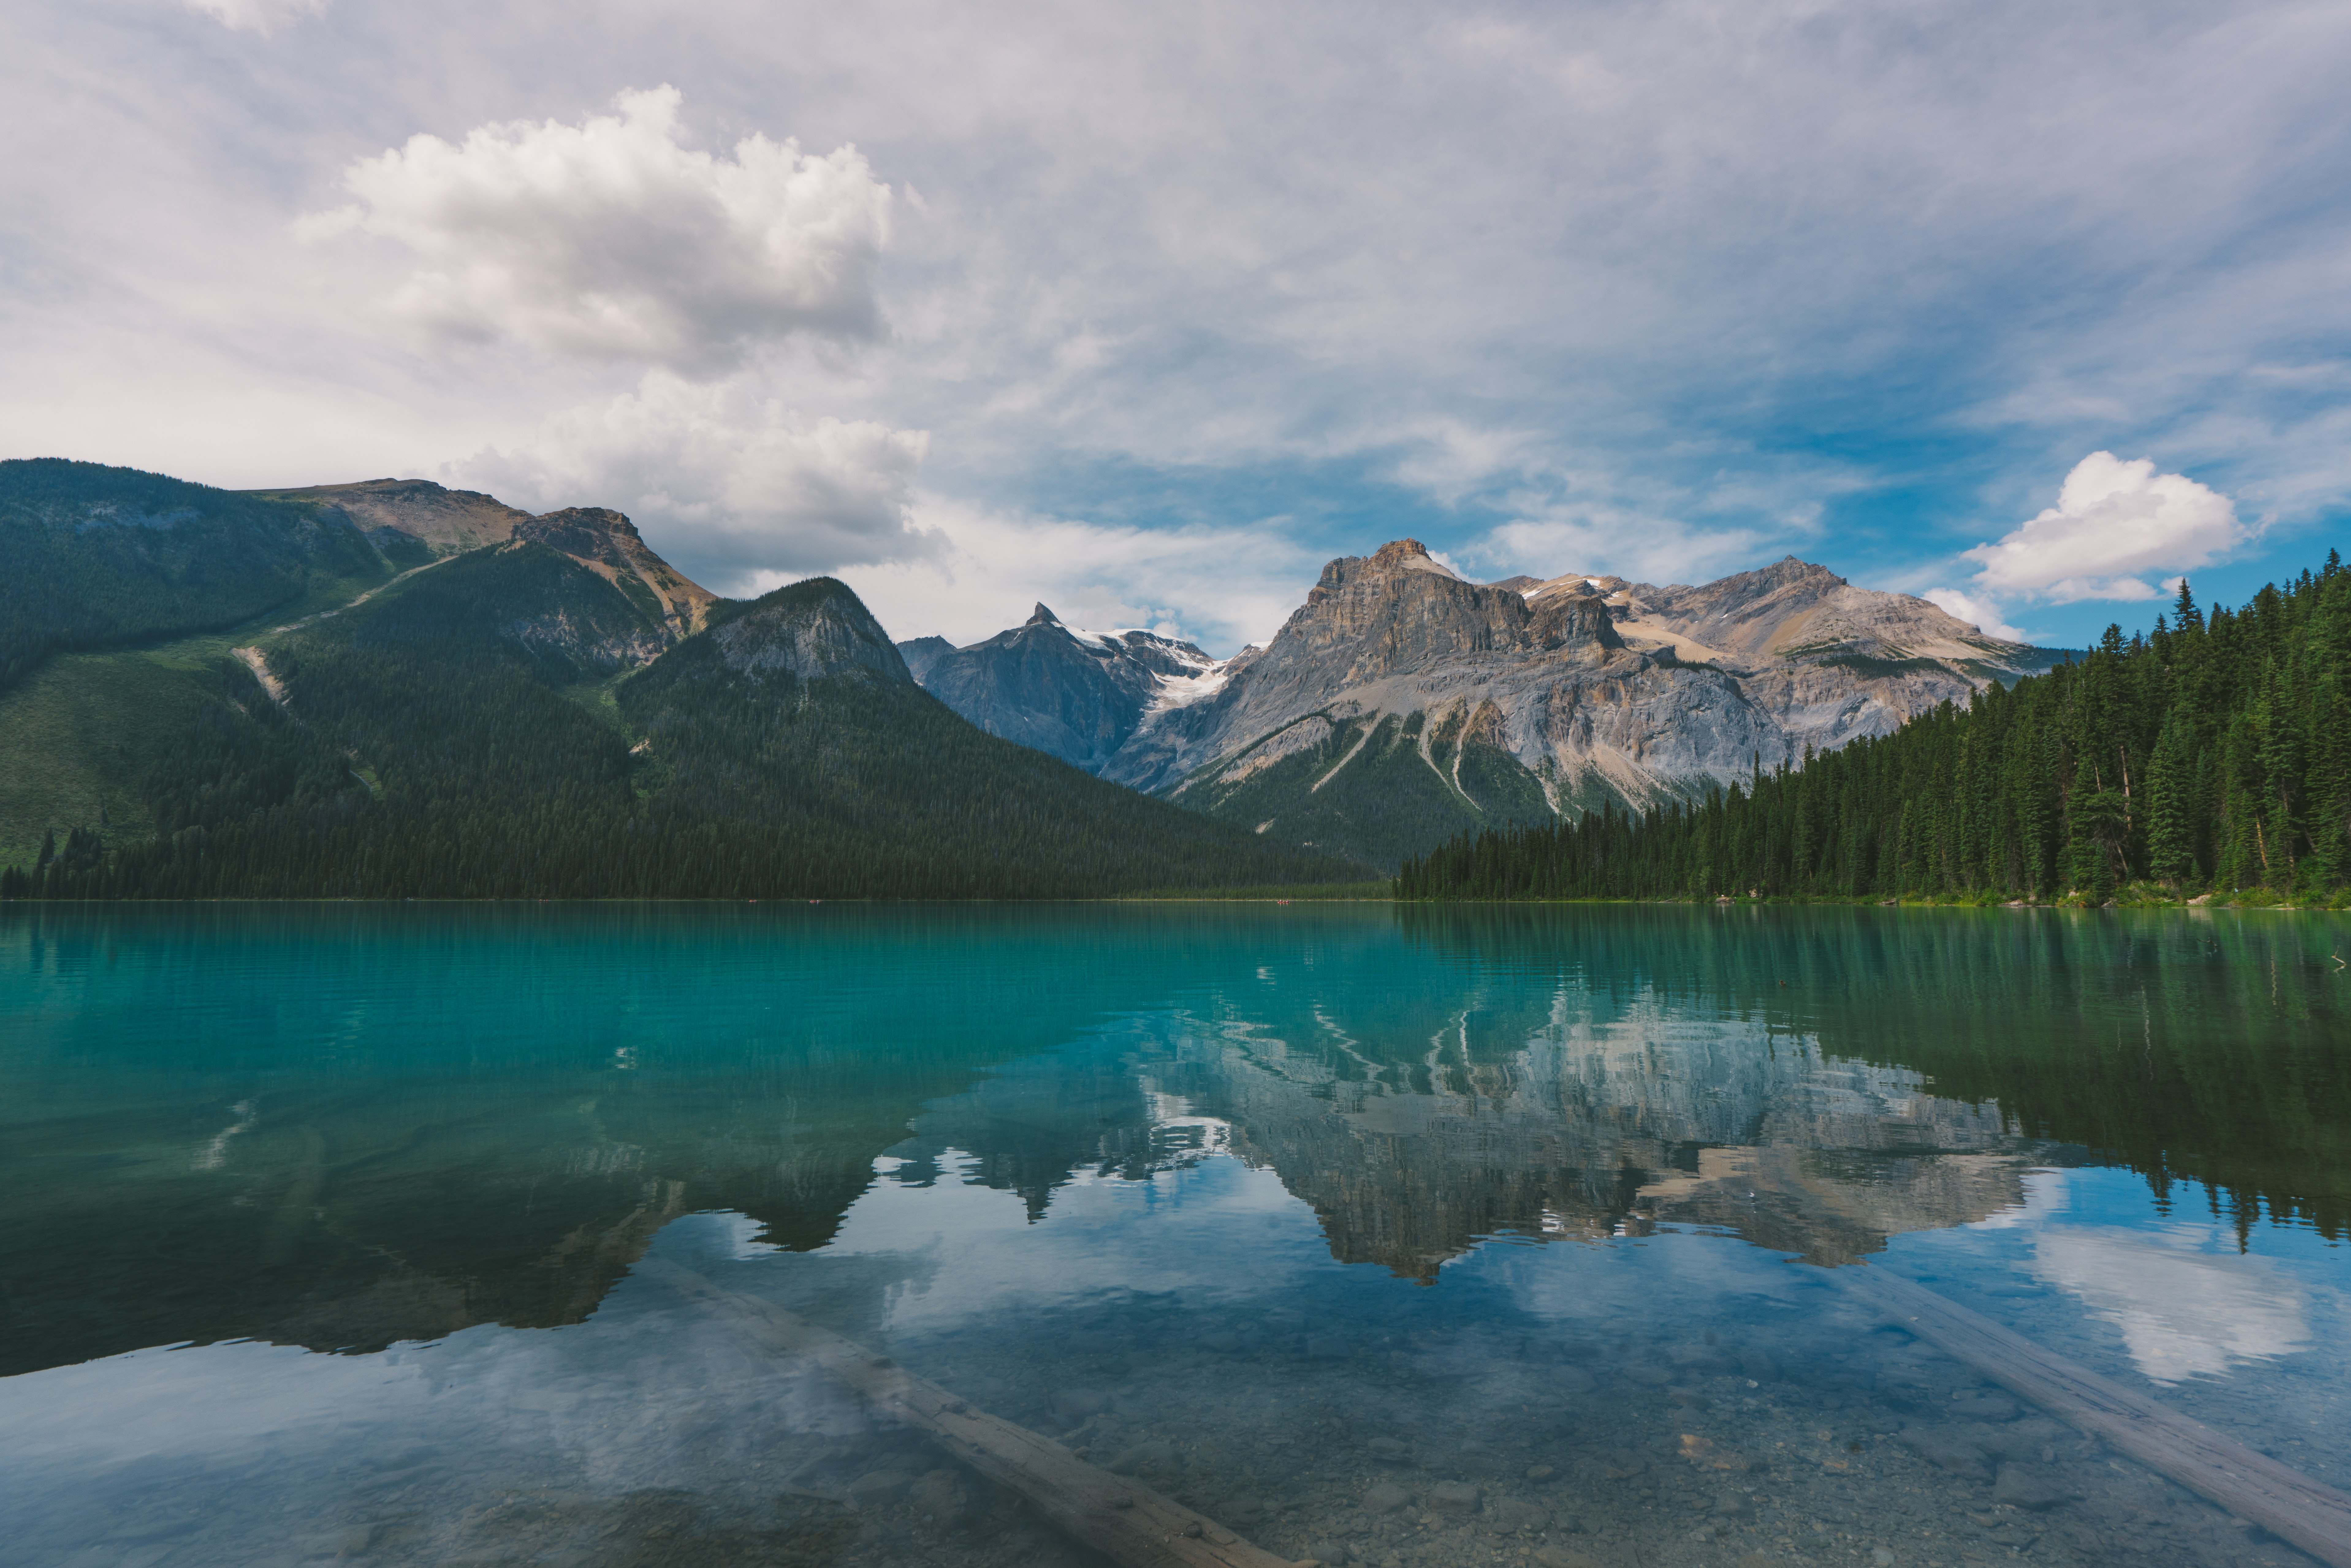 An emerald-green surface of a lake near granite mountains in Yoho National Park